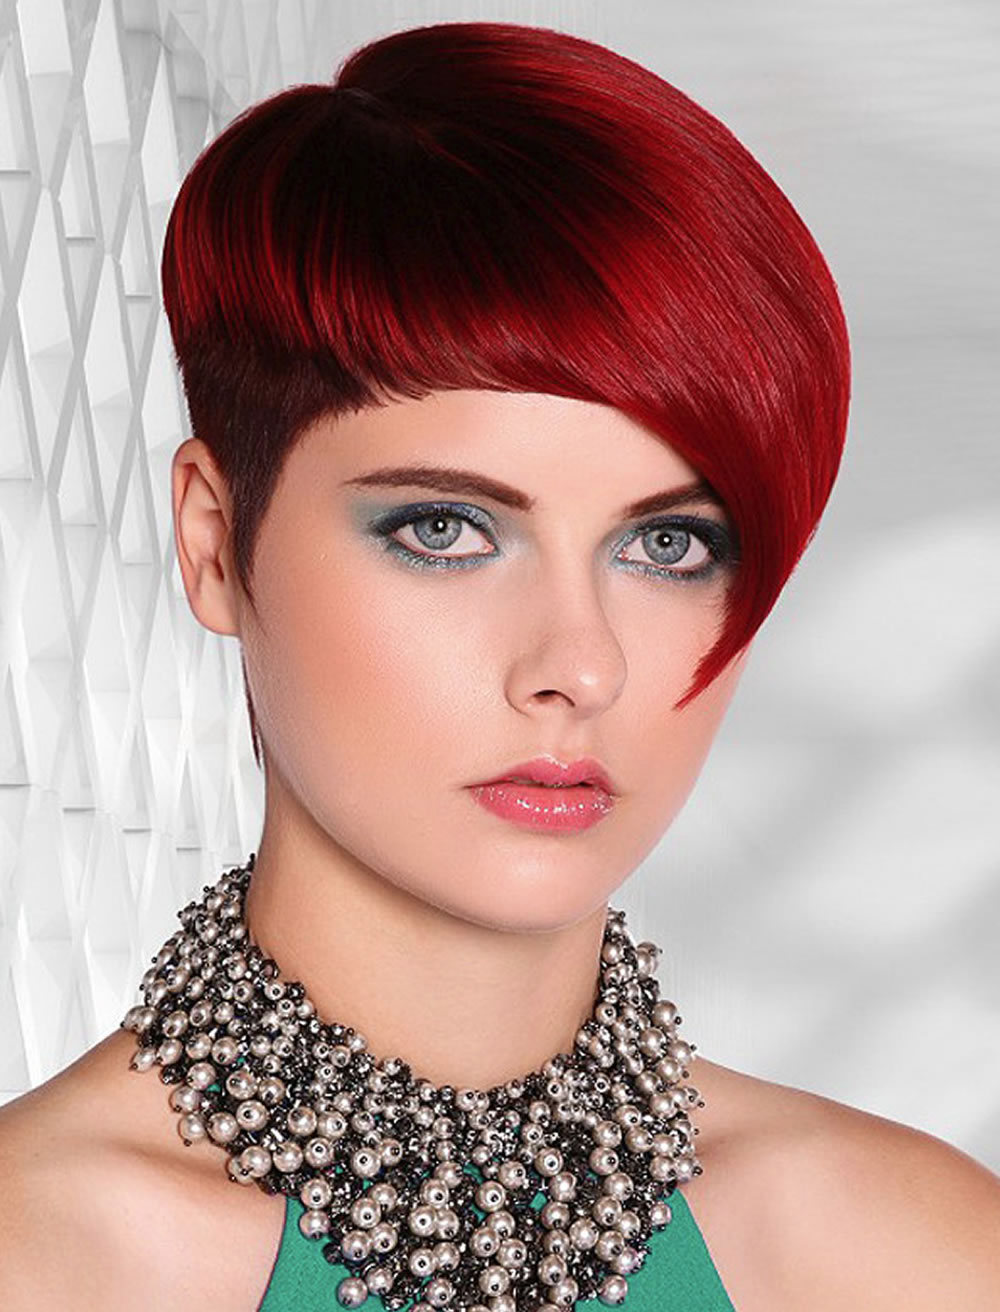 Short Hair Hairstyles For Spring & Summer 2018 2019 – Hairstyles Regarding Summer Short Haircuts (View 17 of 25)